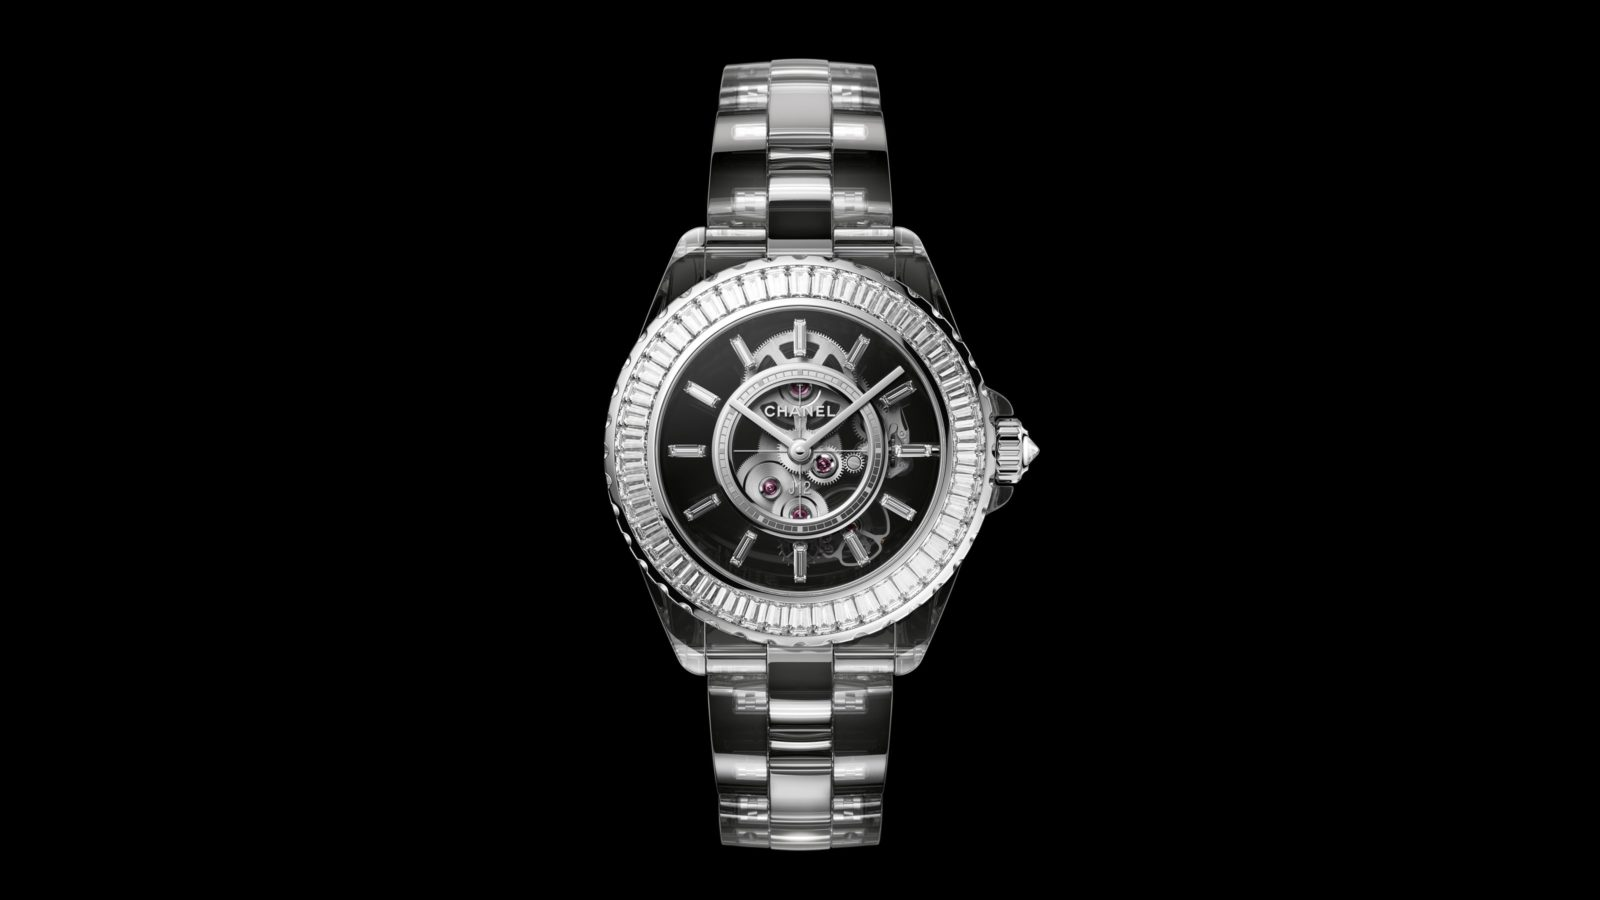 Chanel J12: Iconic watch celebrates 20th anniversary with 12 pieces made of sapphire